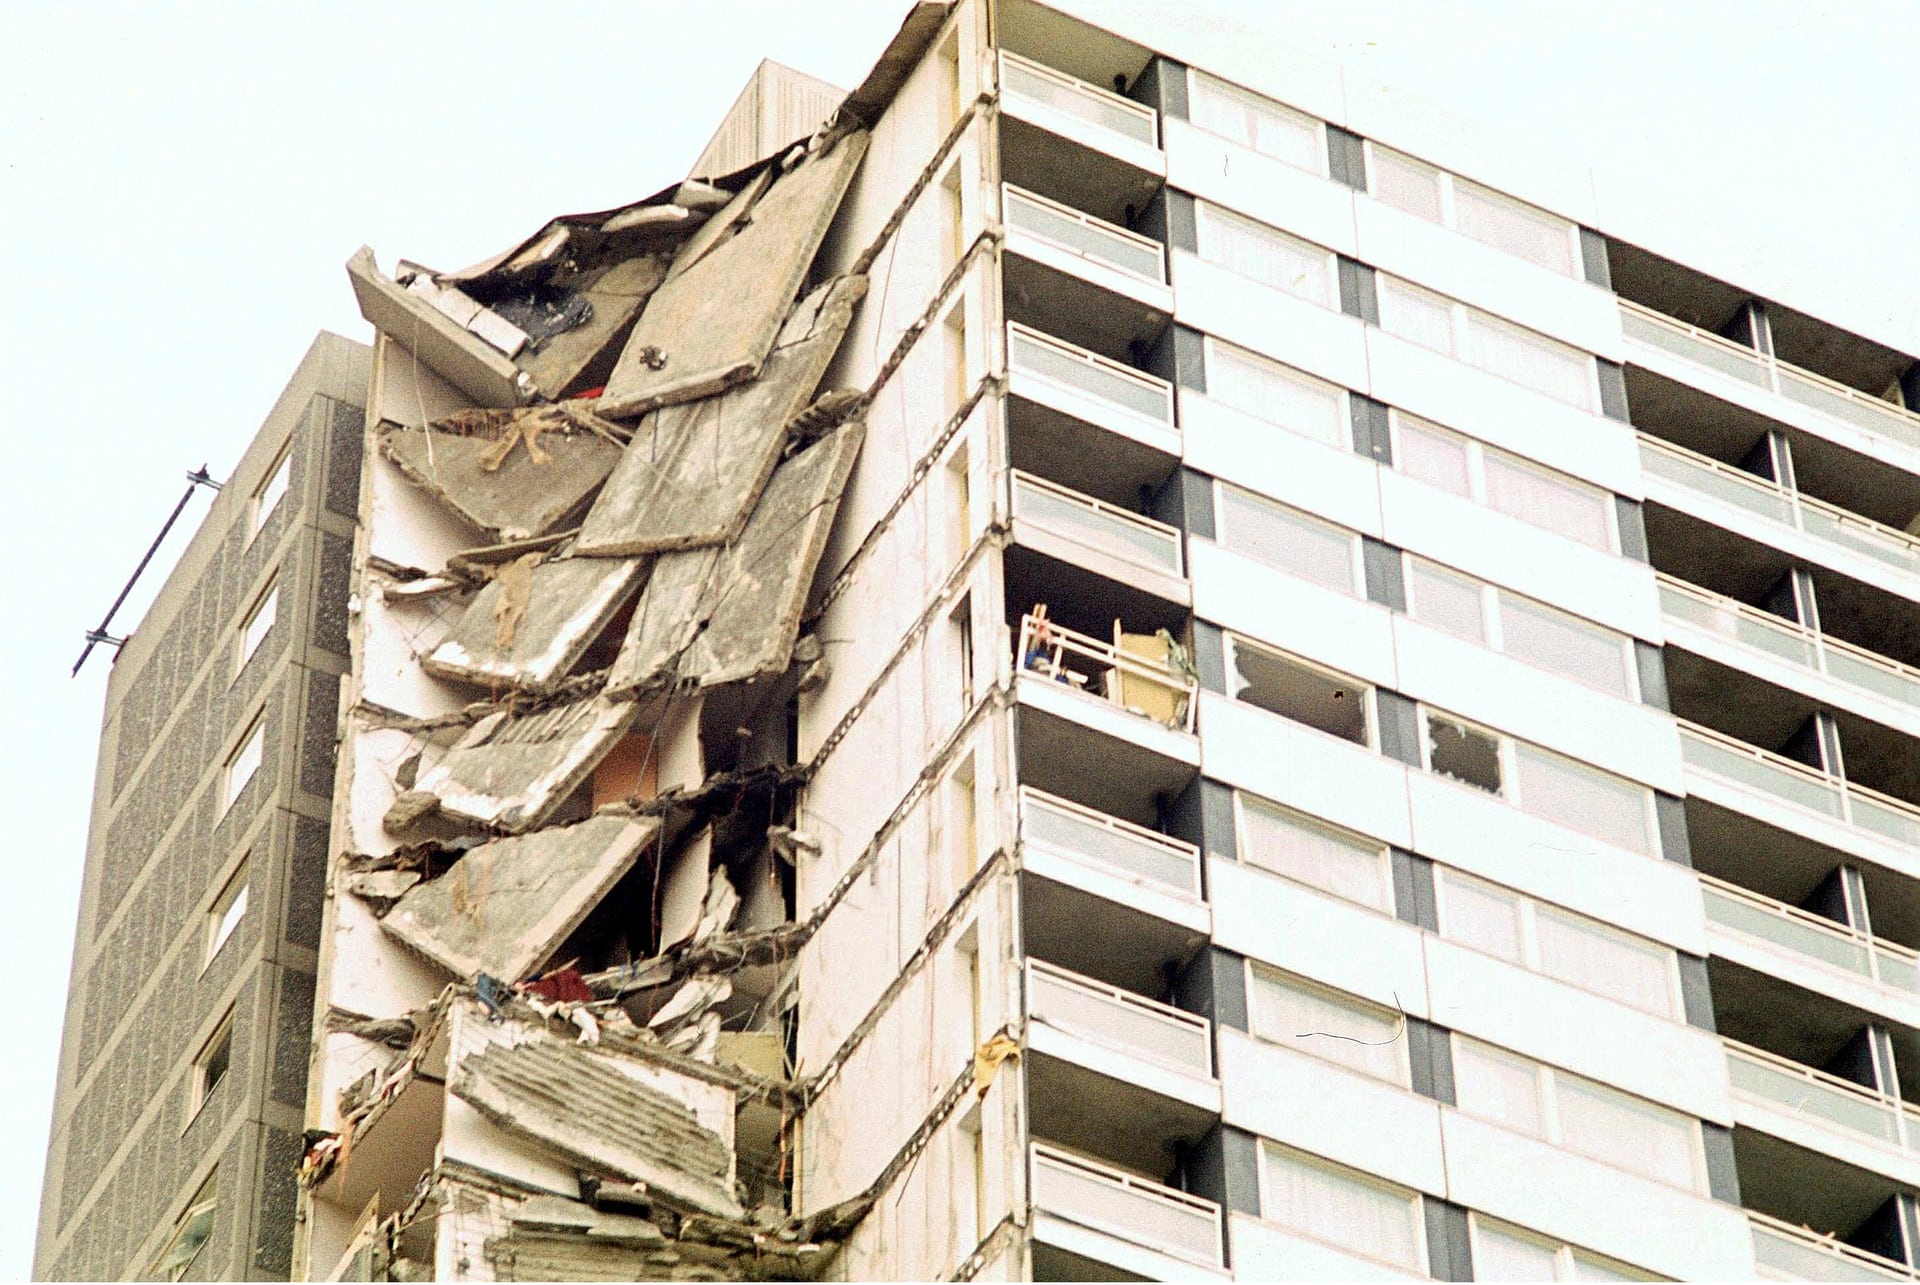 Ronan Point building is an example of progressive collapse